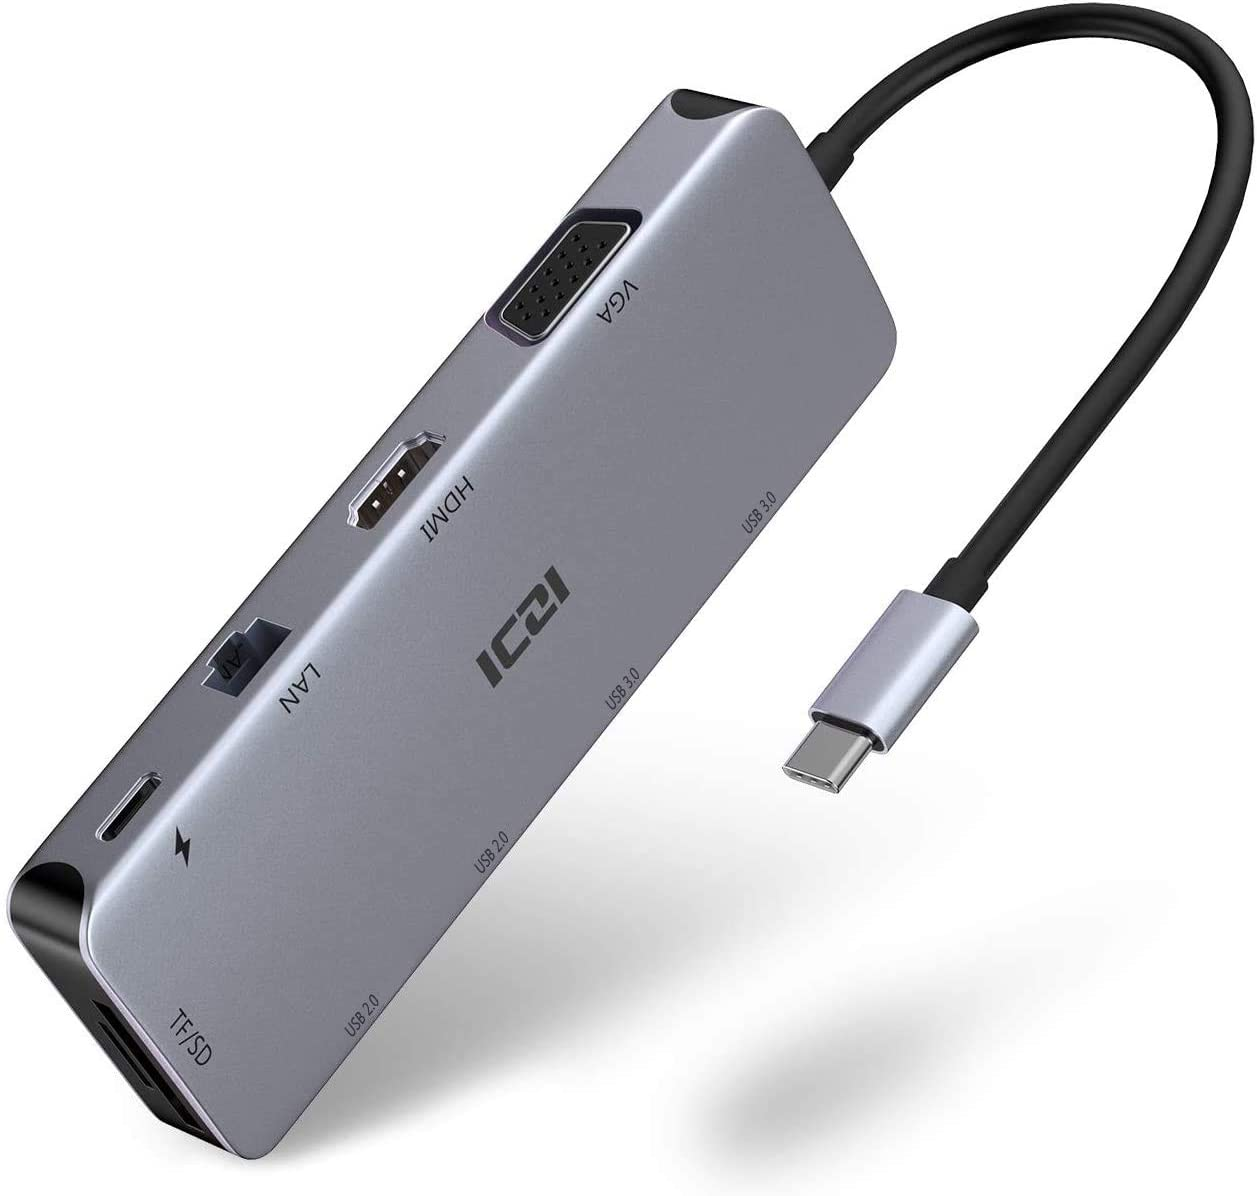 ICZI Hub USB C Thunderbolt 3 10 en 1 de Aluminio Hub USB Tipo C a 4 USB HDMI 4K Dex VGA RJ45 Ethernet Lector de Tarjeta SD TF USB-C Power Delivery Docking Station para Macbook Pro etc